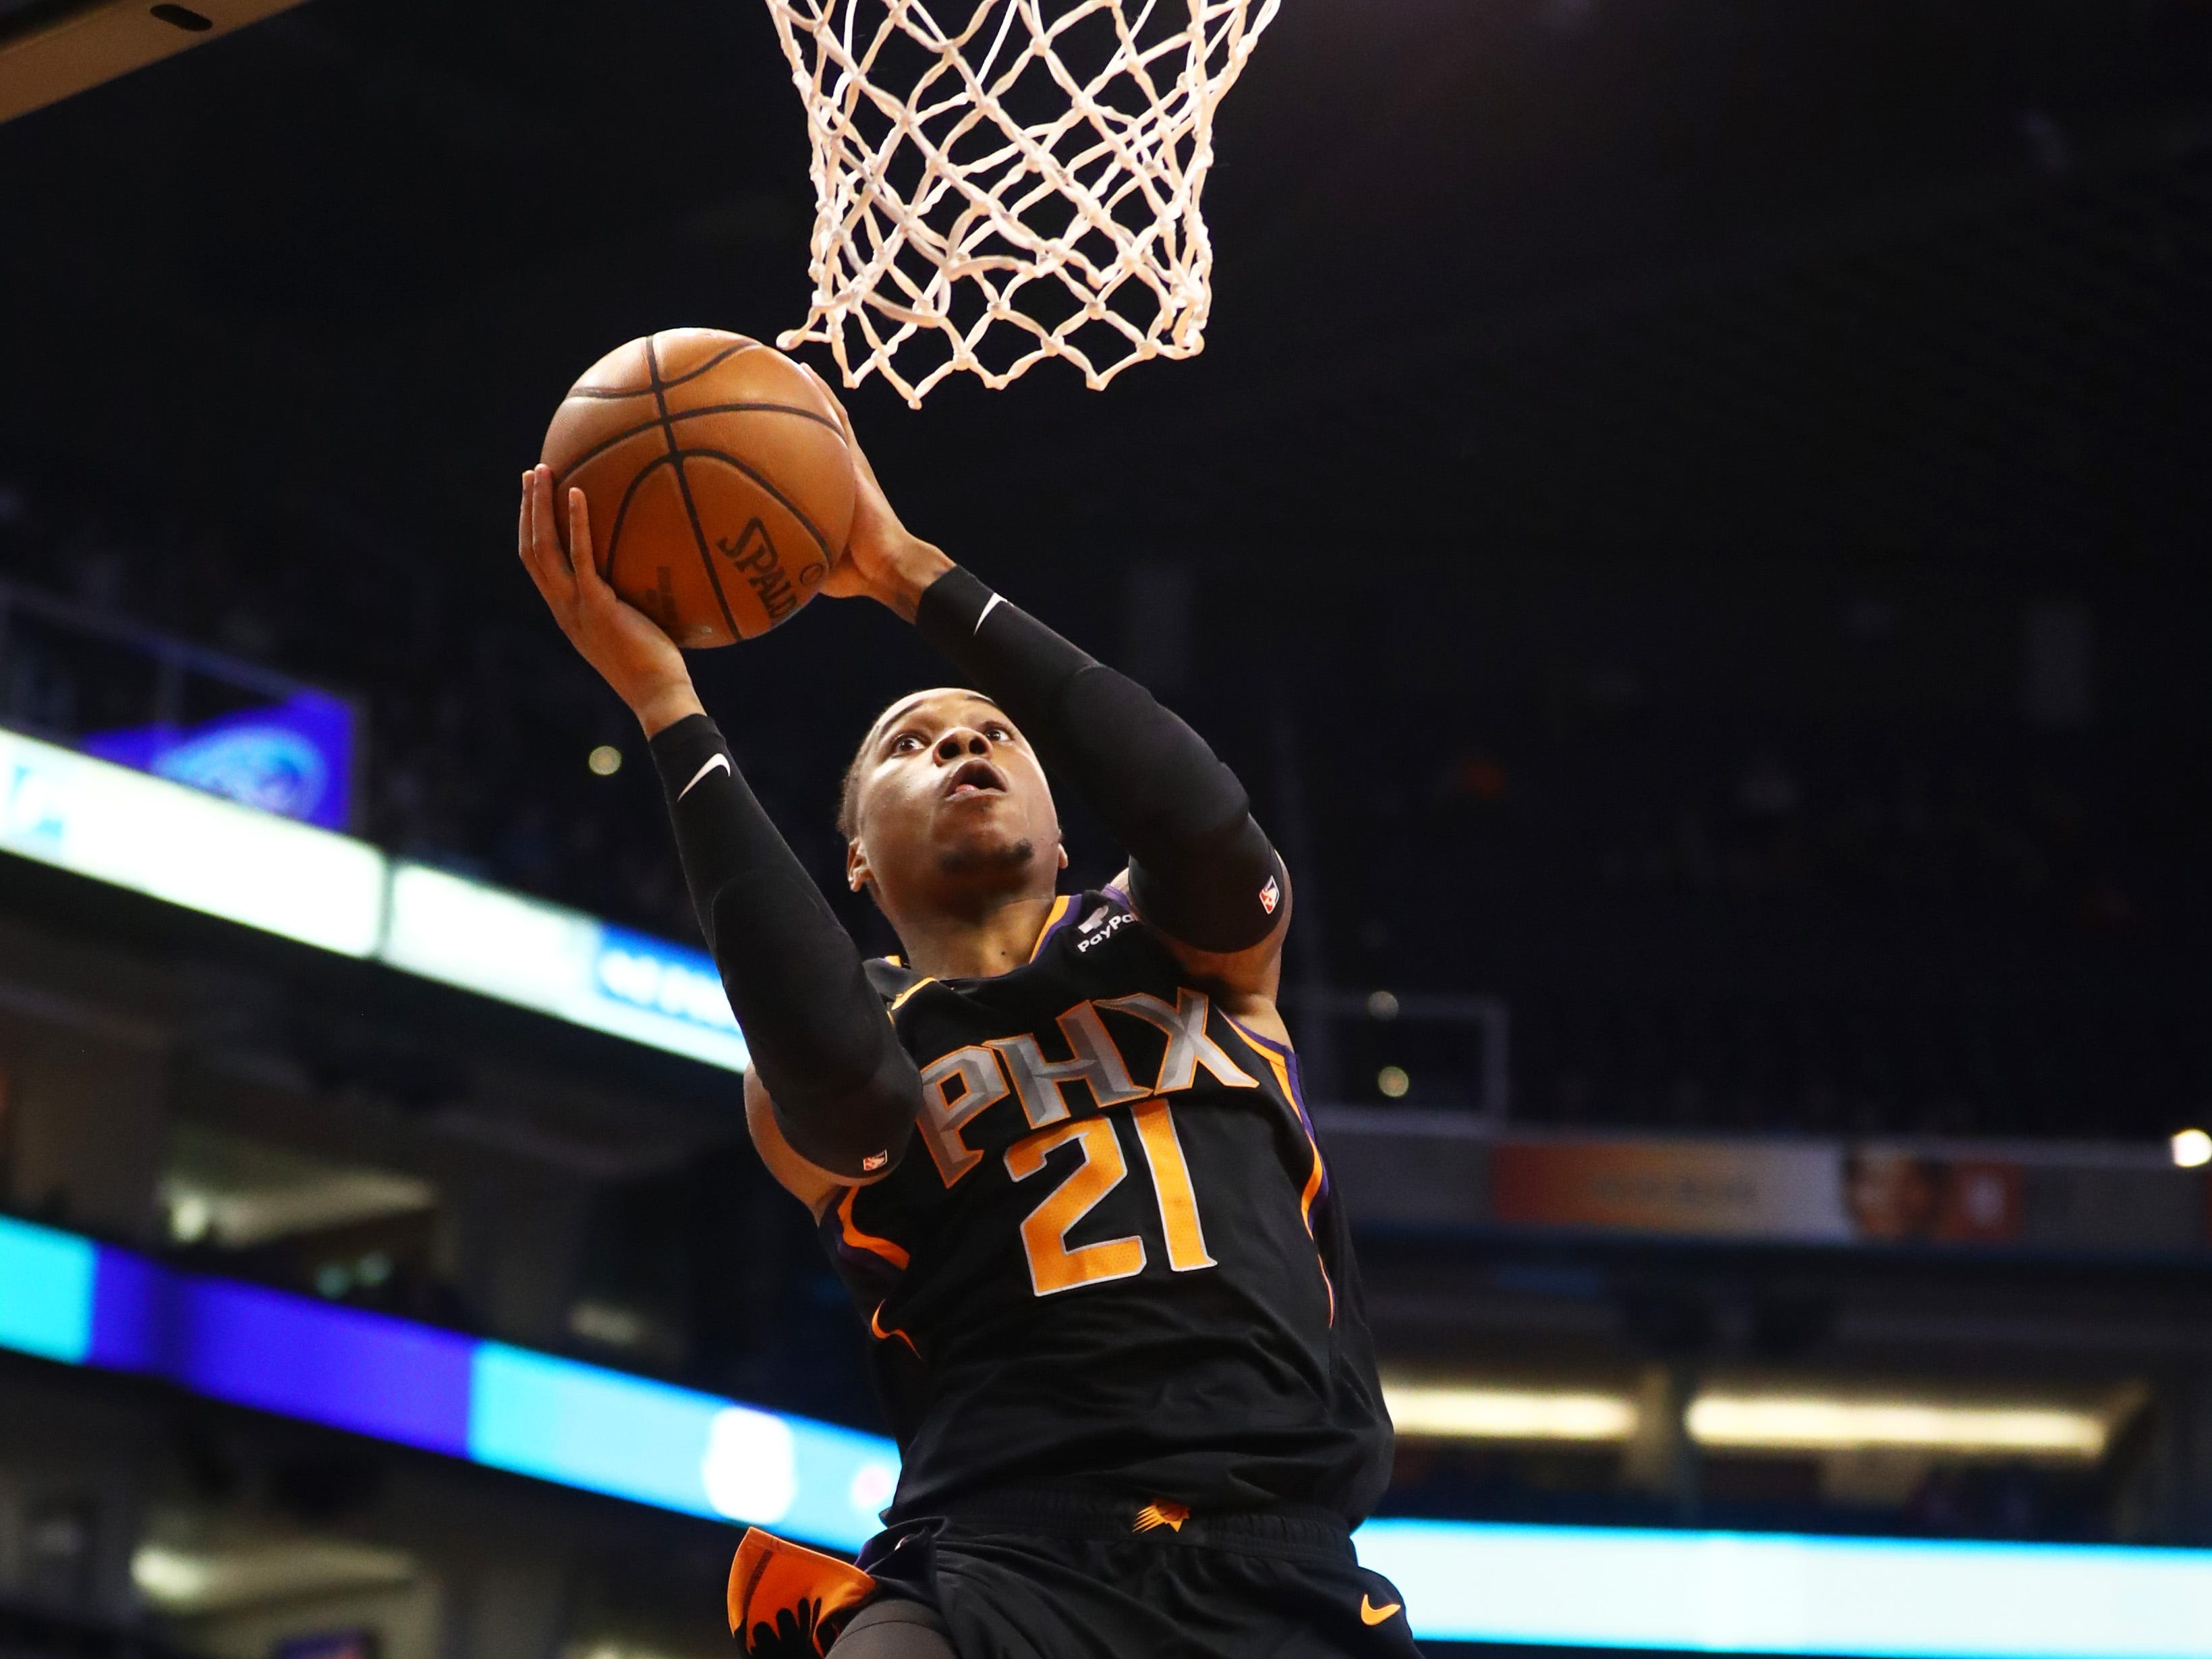 Dec 15, 2018; Phoenix, AZ, USA; Phoenix Suns forward Richaun Holmes (21) drives to the basket in the first half against the Minnesota Timberwolves at Talking Stick Resort Arena. Mandatory Credit: Mark J. Rebilas-USA TODAY Sports